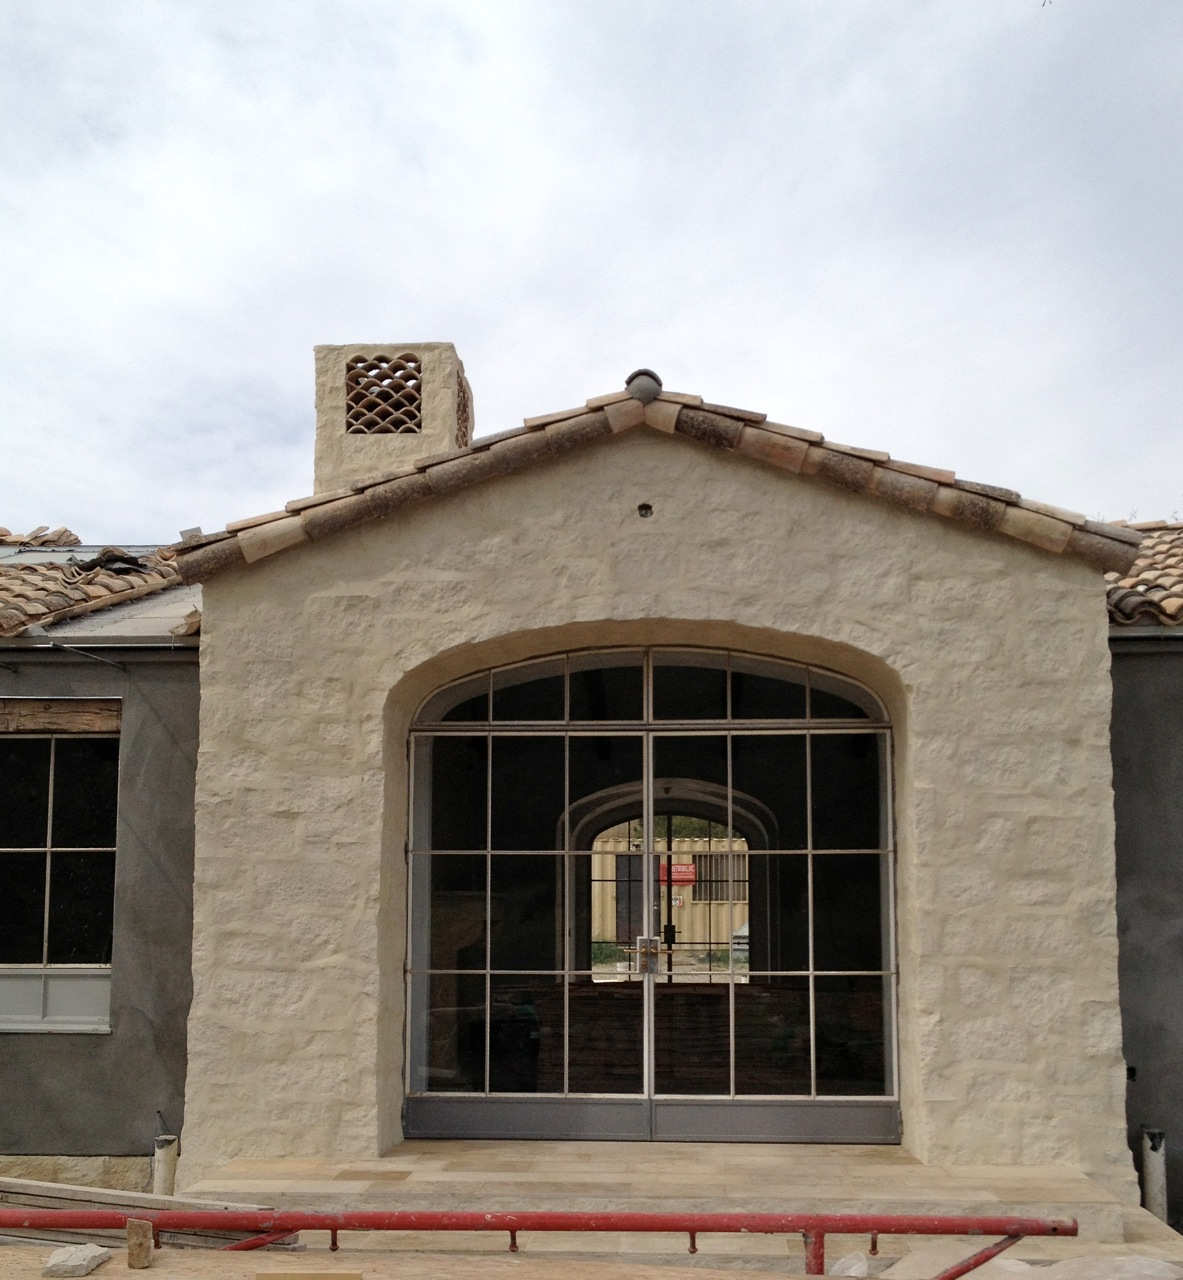 patina farm update: tile chimney, exterior stucco and the wood ...